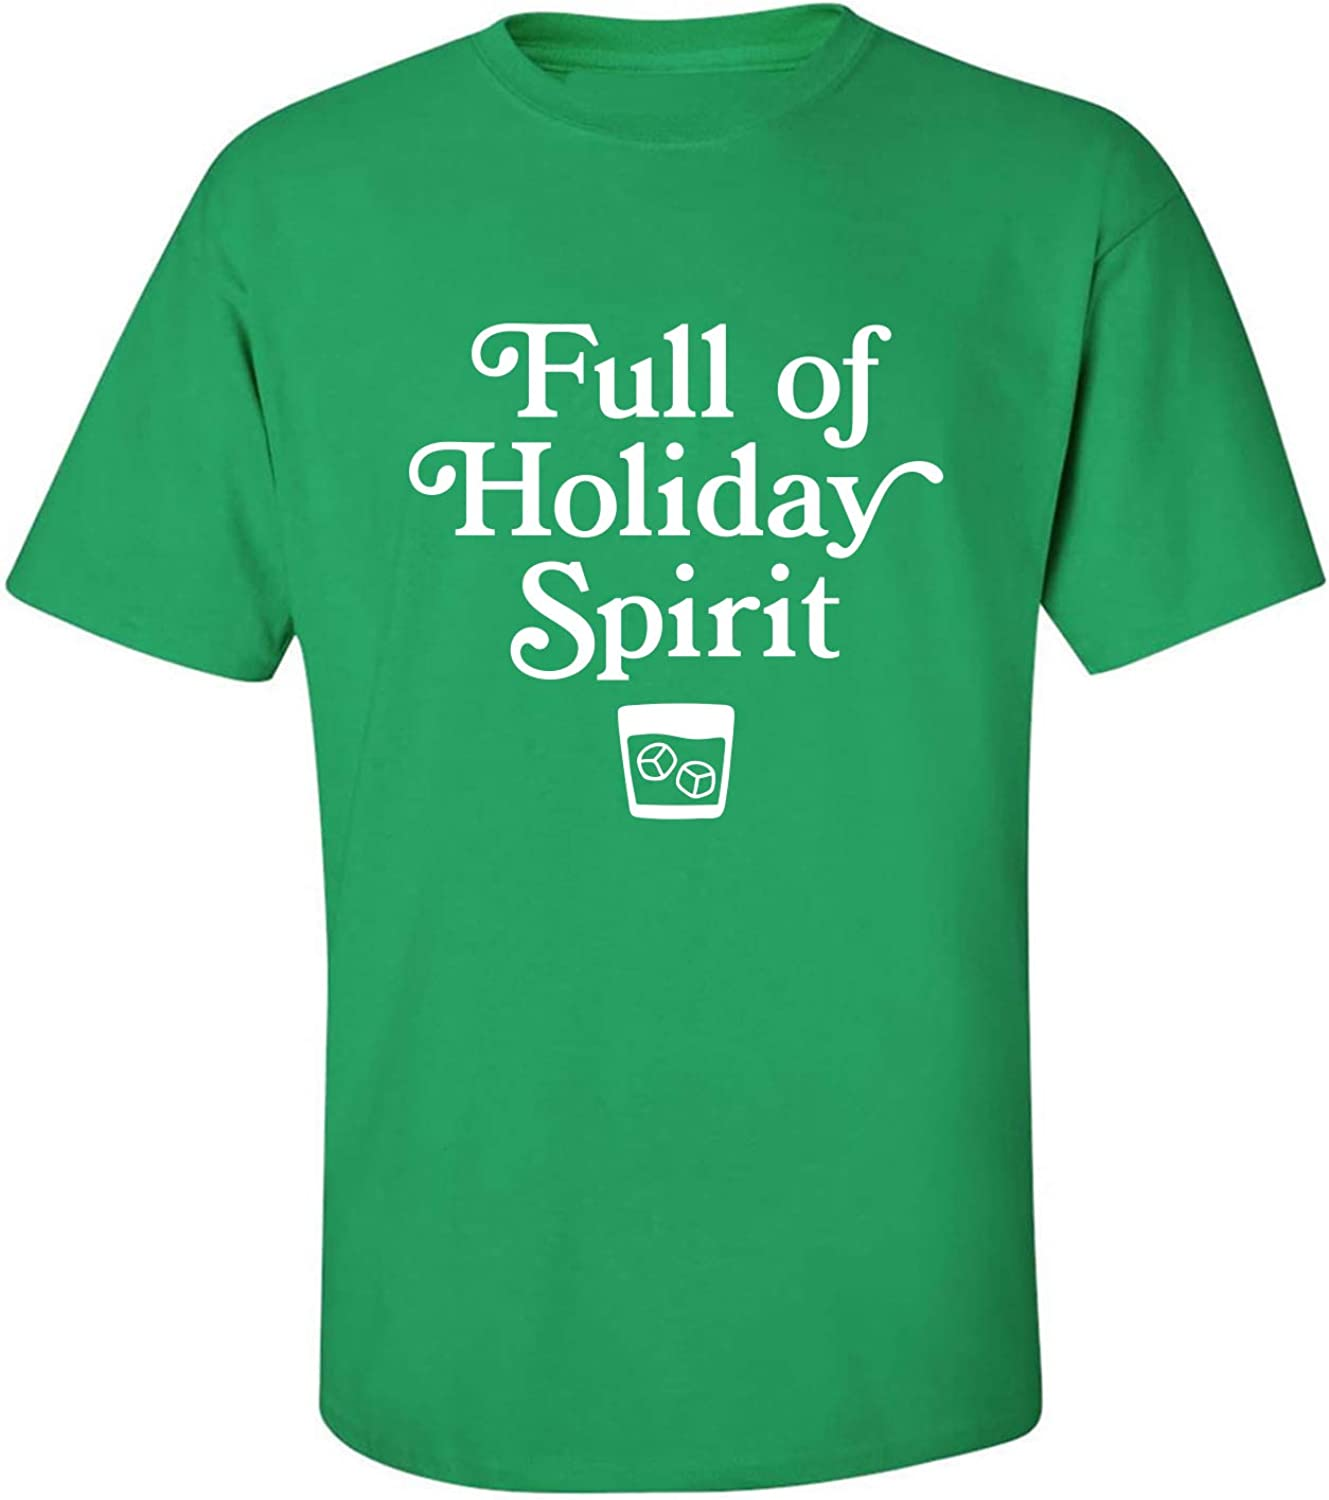 Full of Holiday Spirit Adult T-Shirt in Kelly Green - XXXX-Large